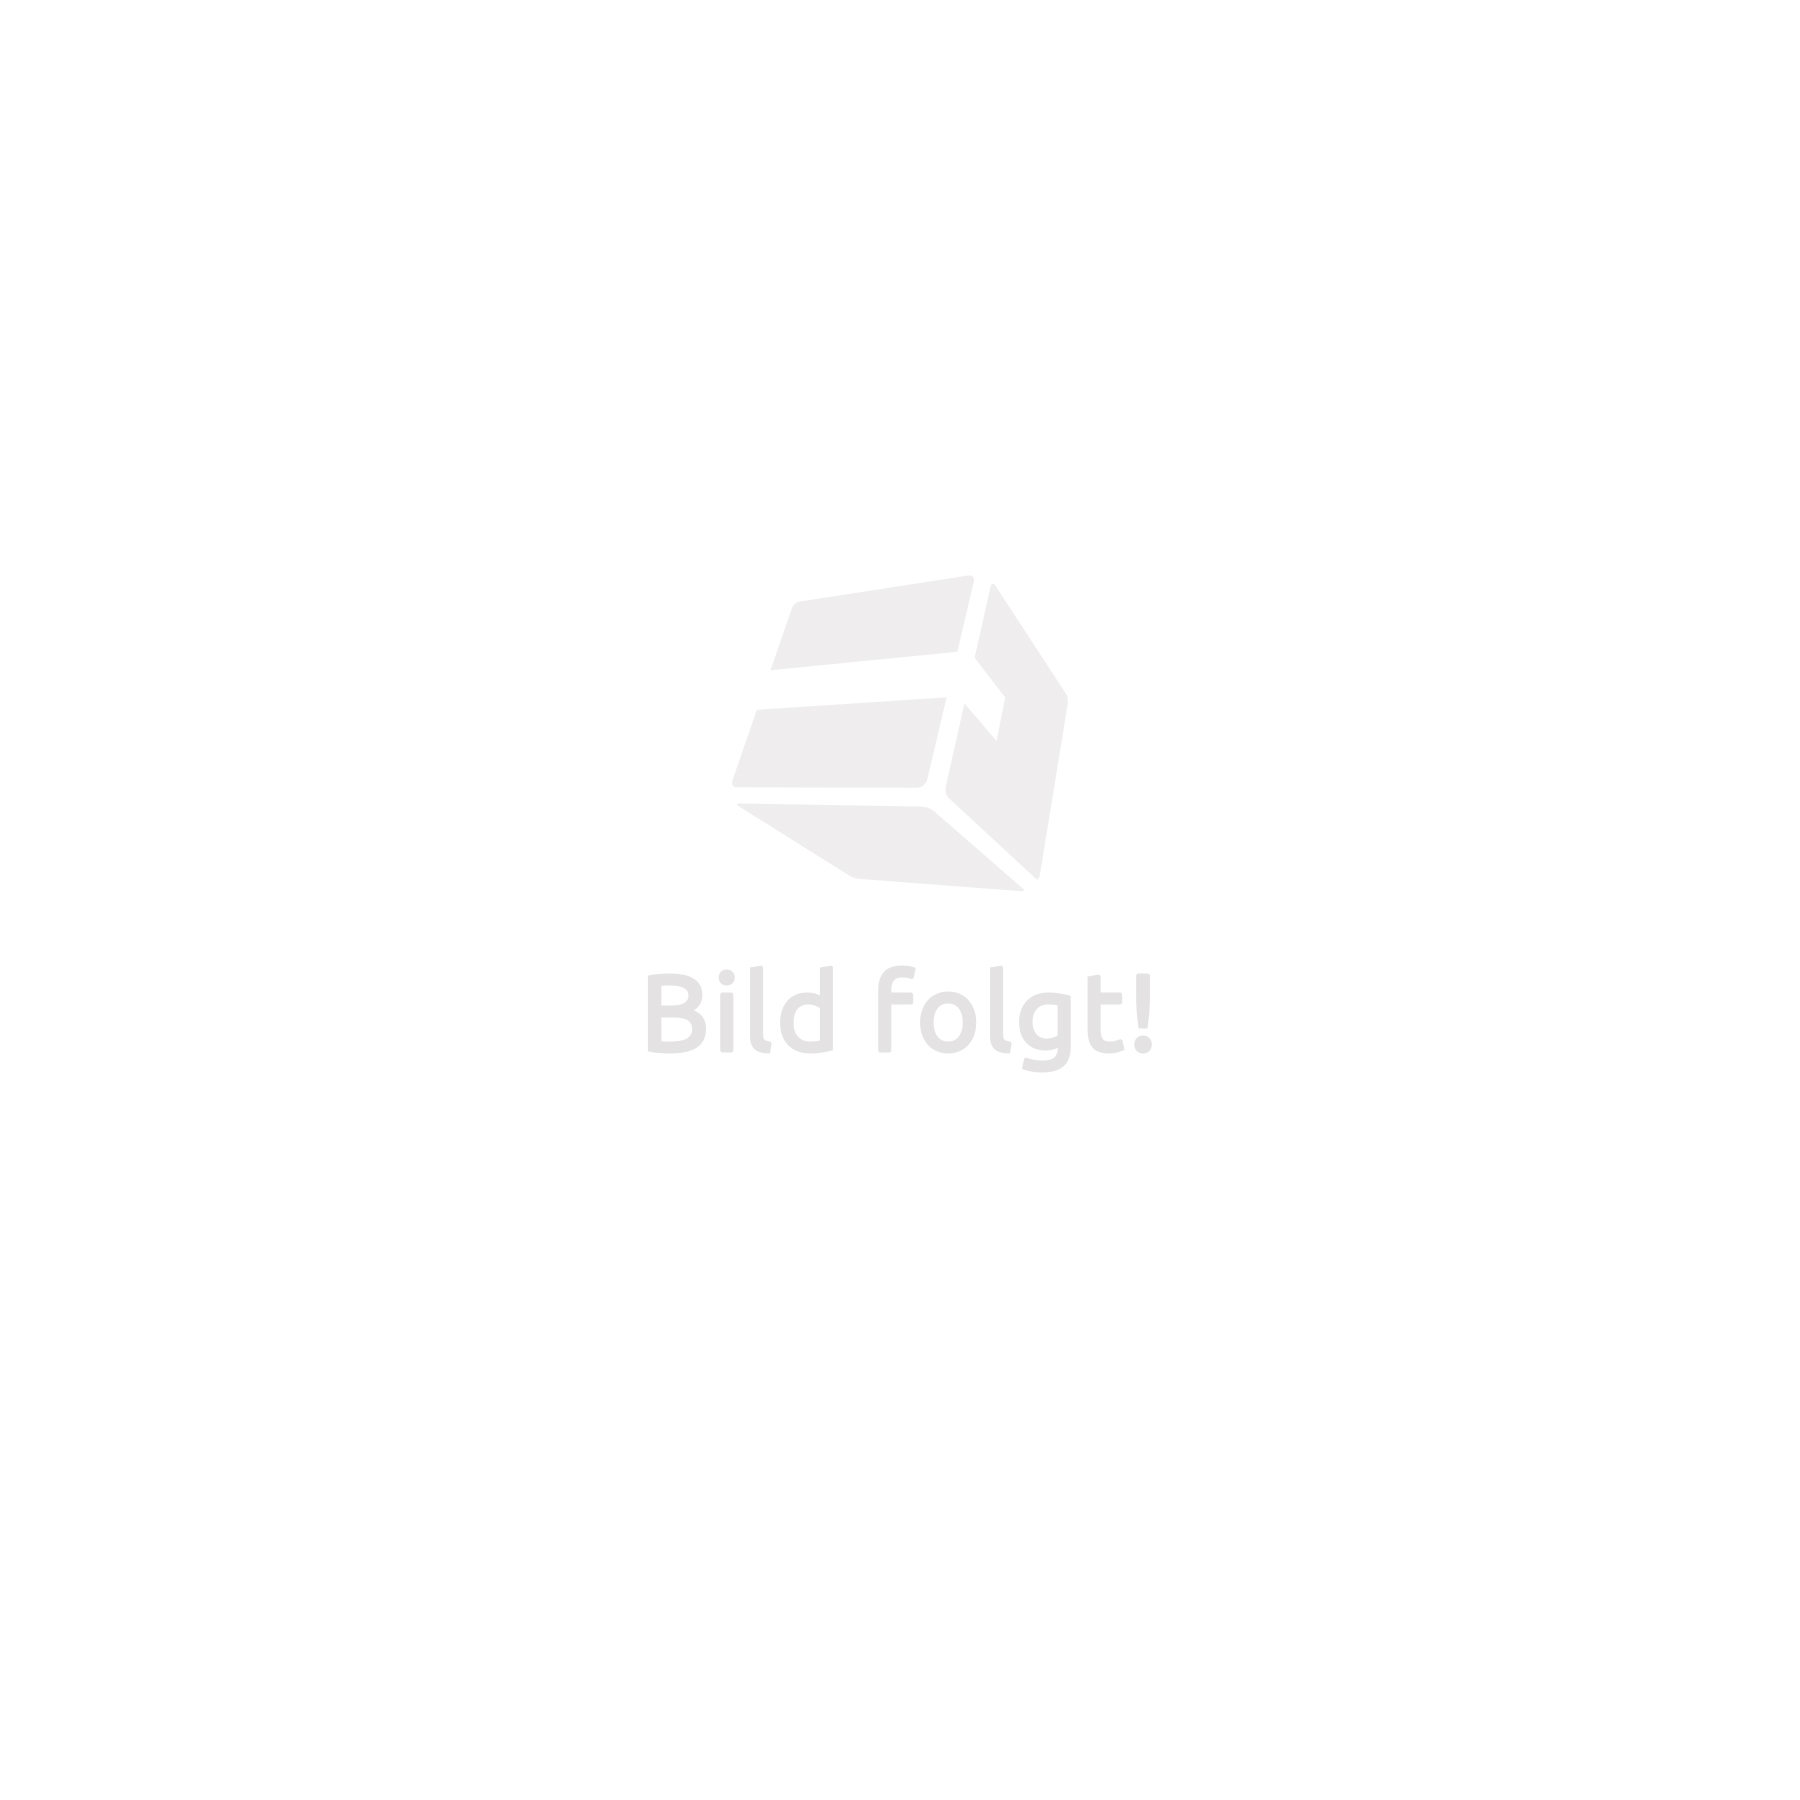 140x200 cm schlafzimmerbett metallbett bettgestell bett wei neu lattenrost ebay. Black Bedroom Furniture Sets. Home Design Ideas